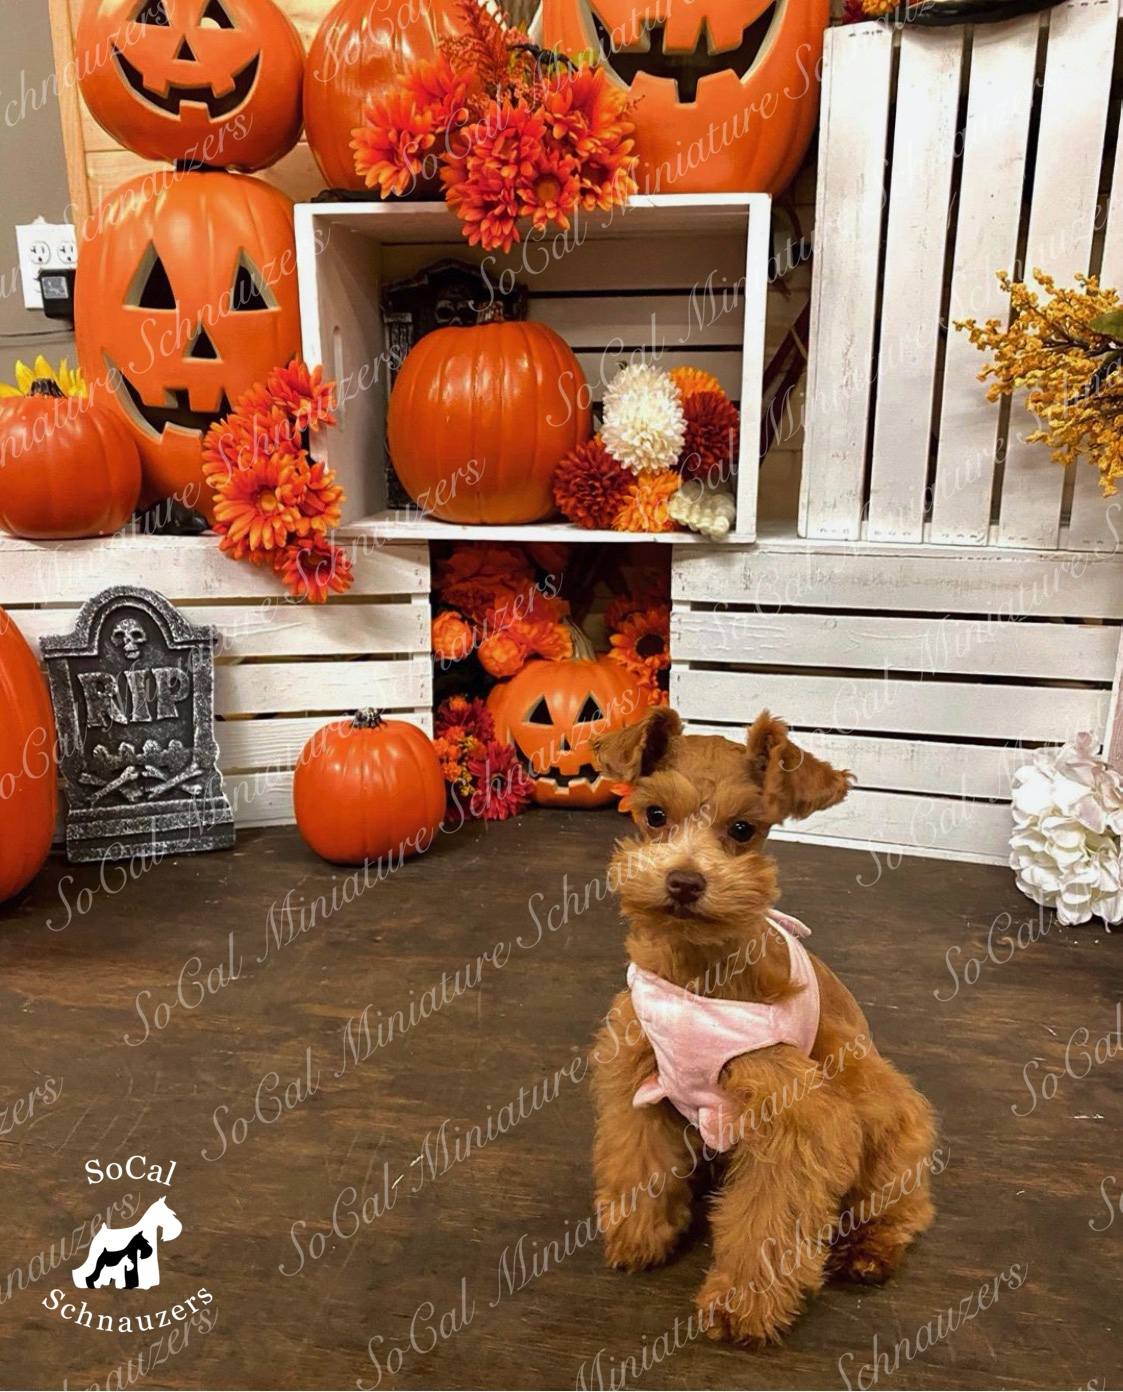 Small brown schnauzer with pink onesie and pumpkins in background